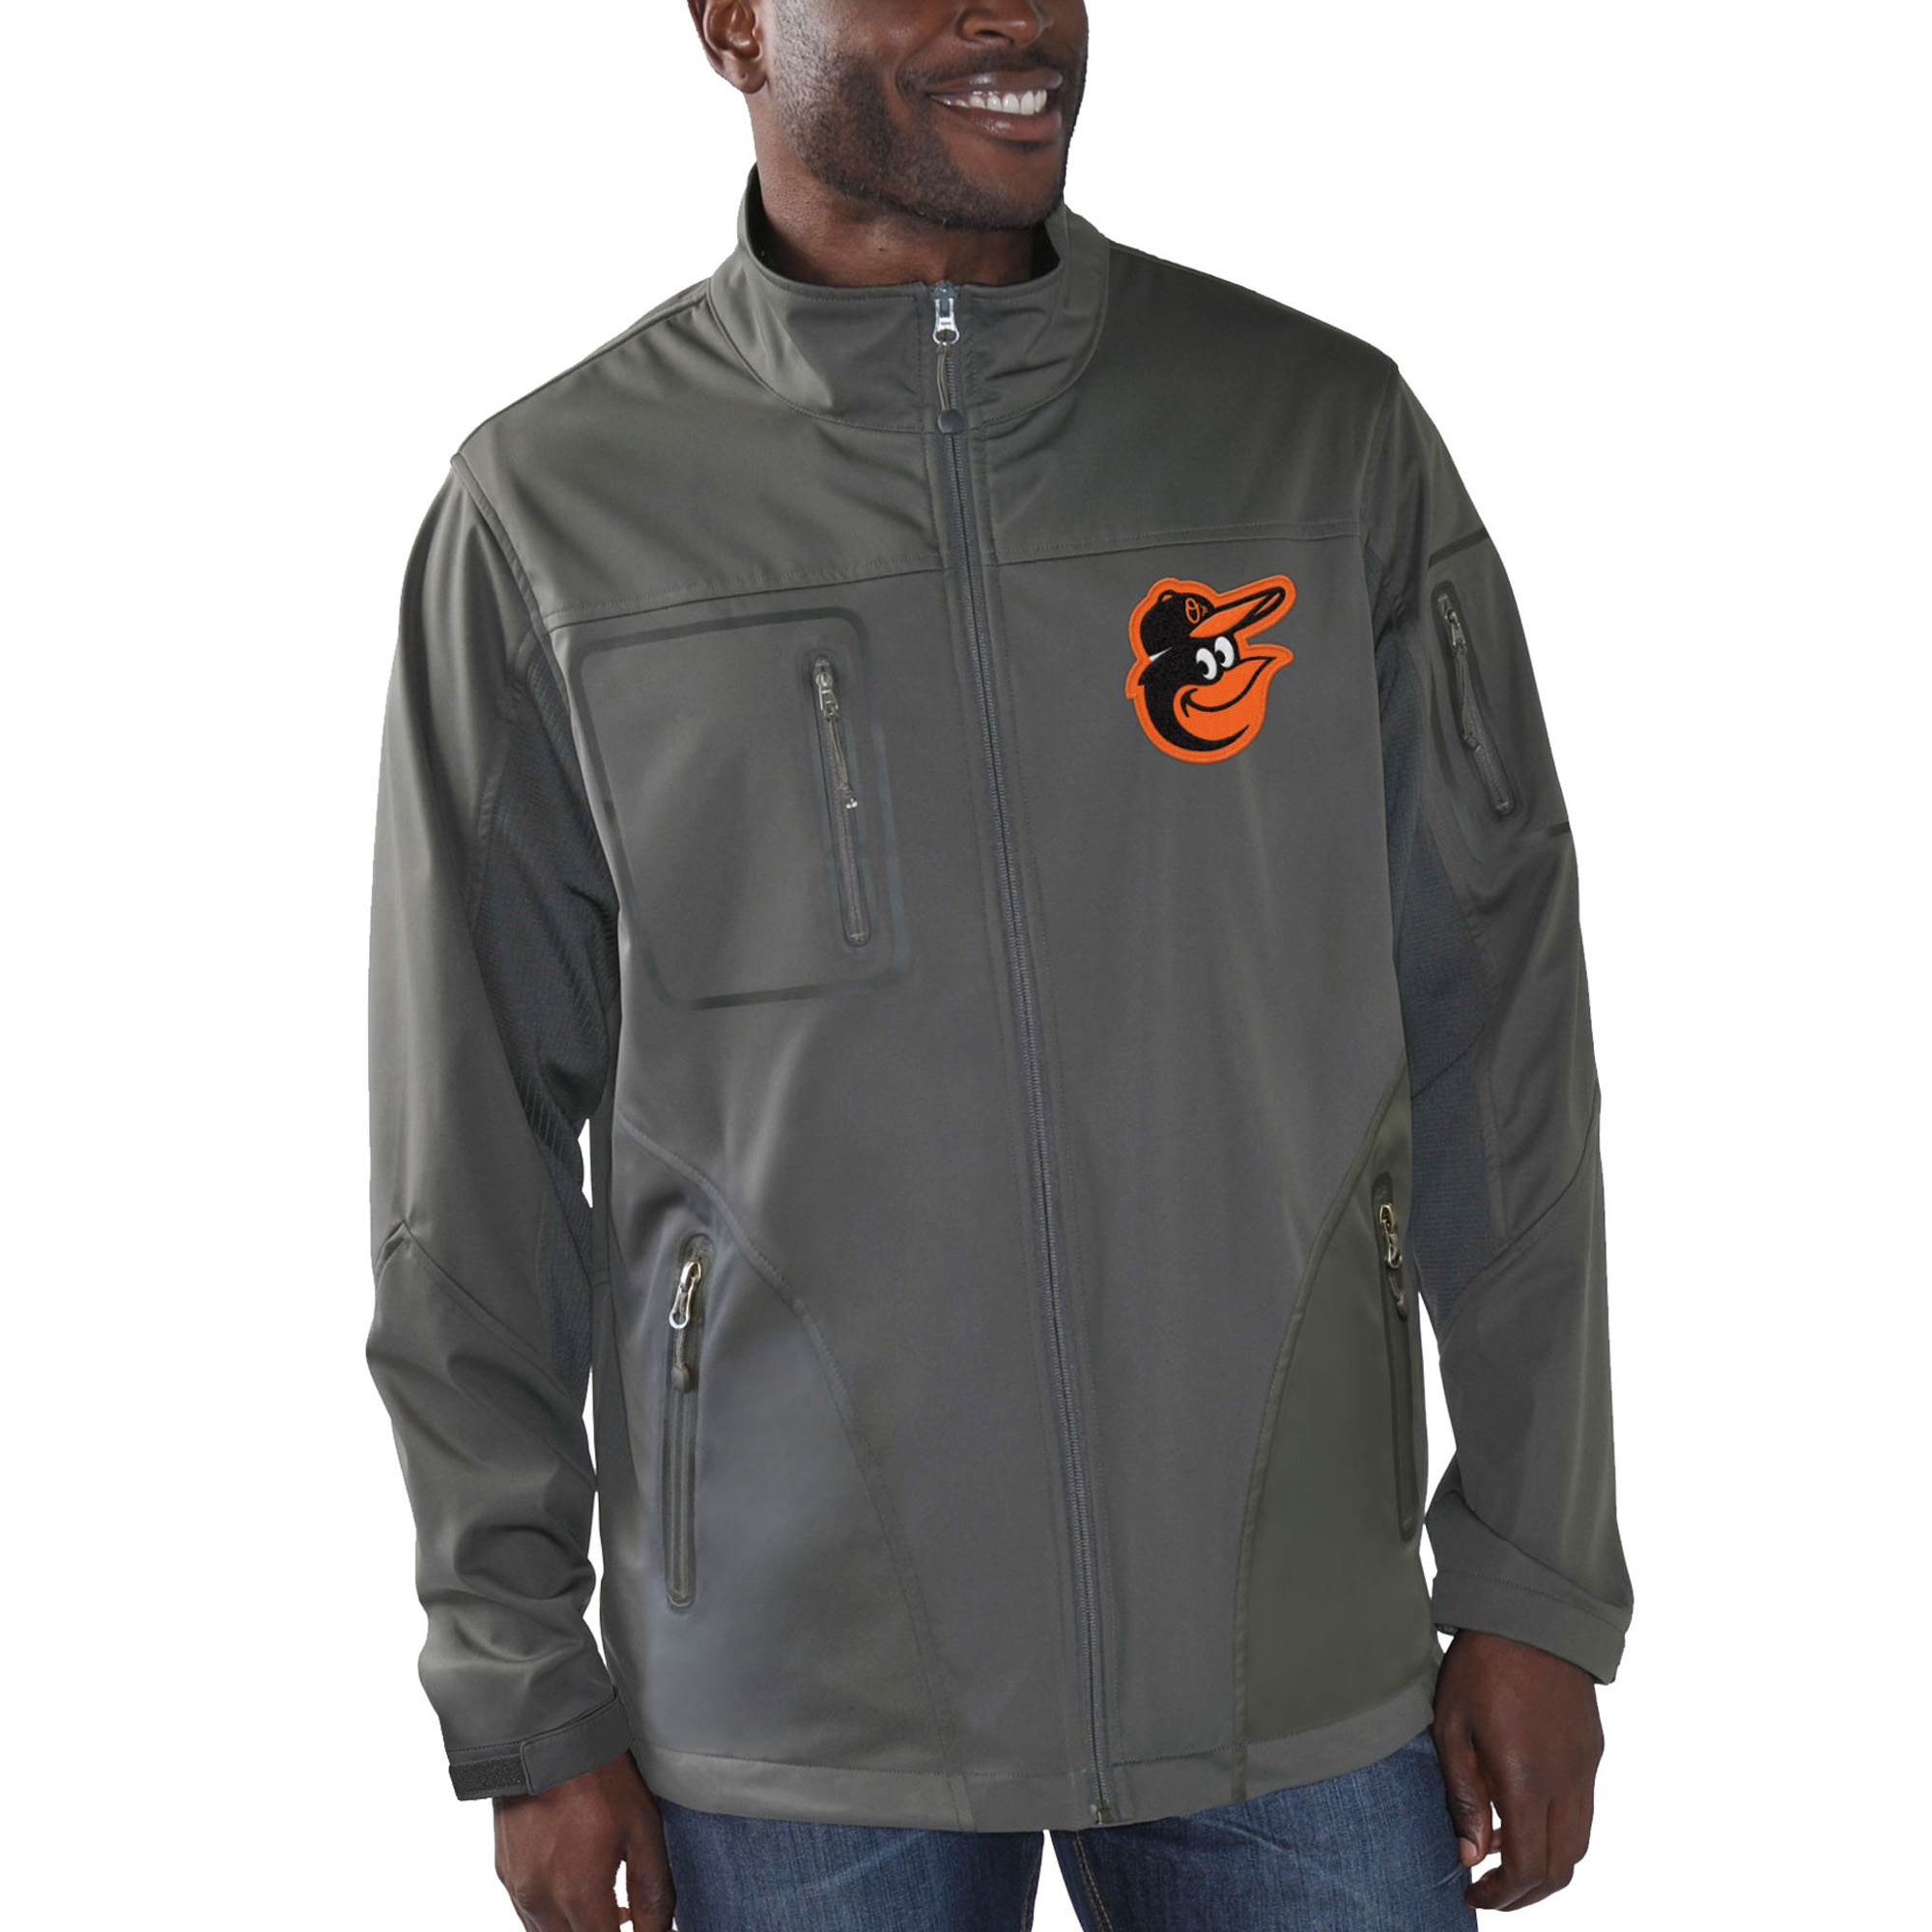 Baltimore Orioles G-III Sports by Carl Banks Scrimmage Full-Zip Jacket - Charcoal